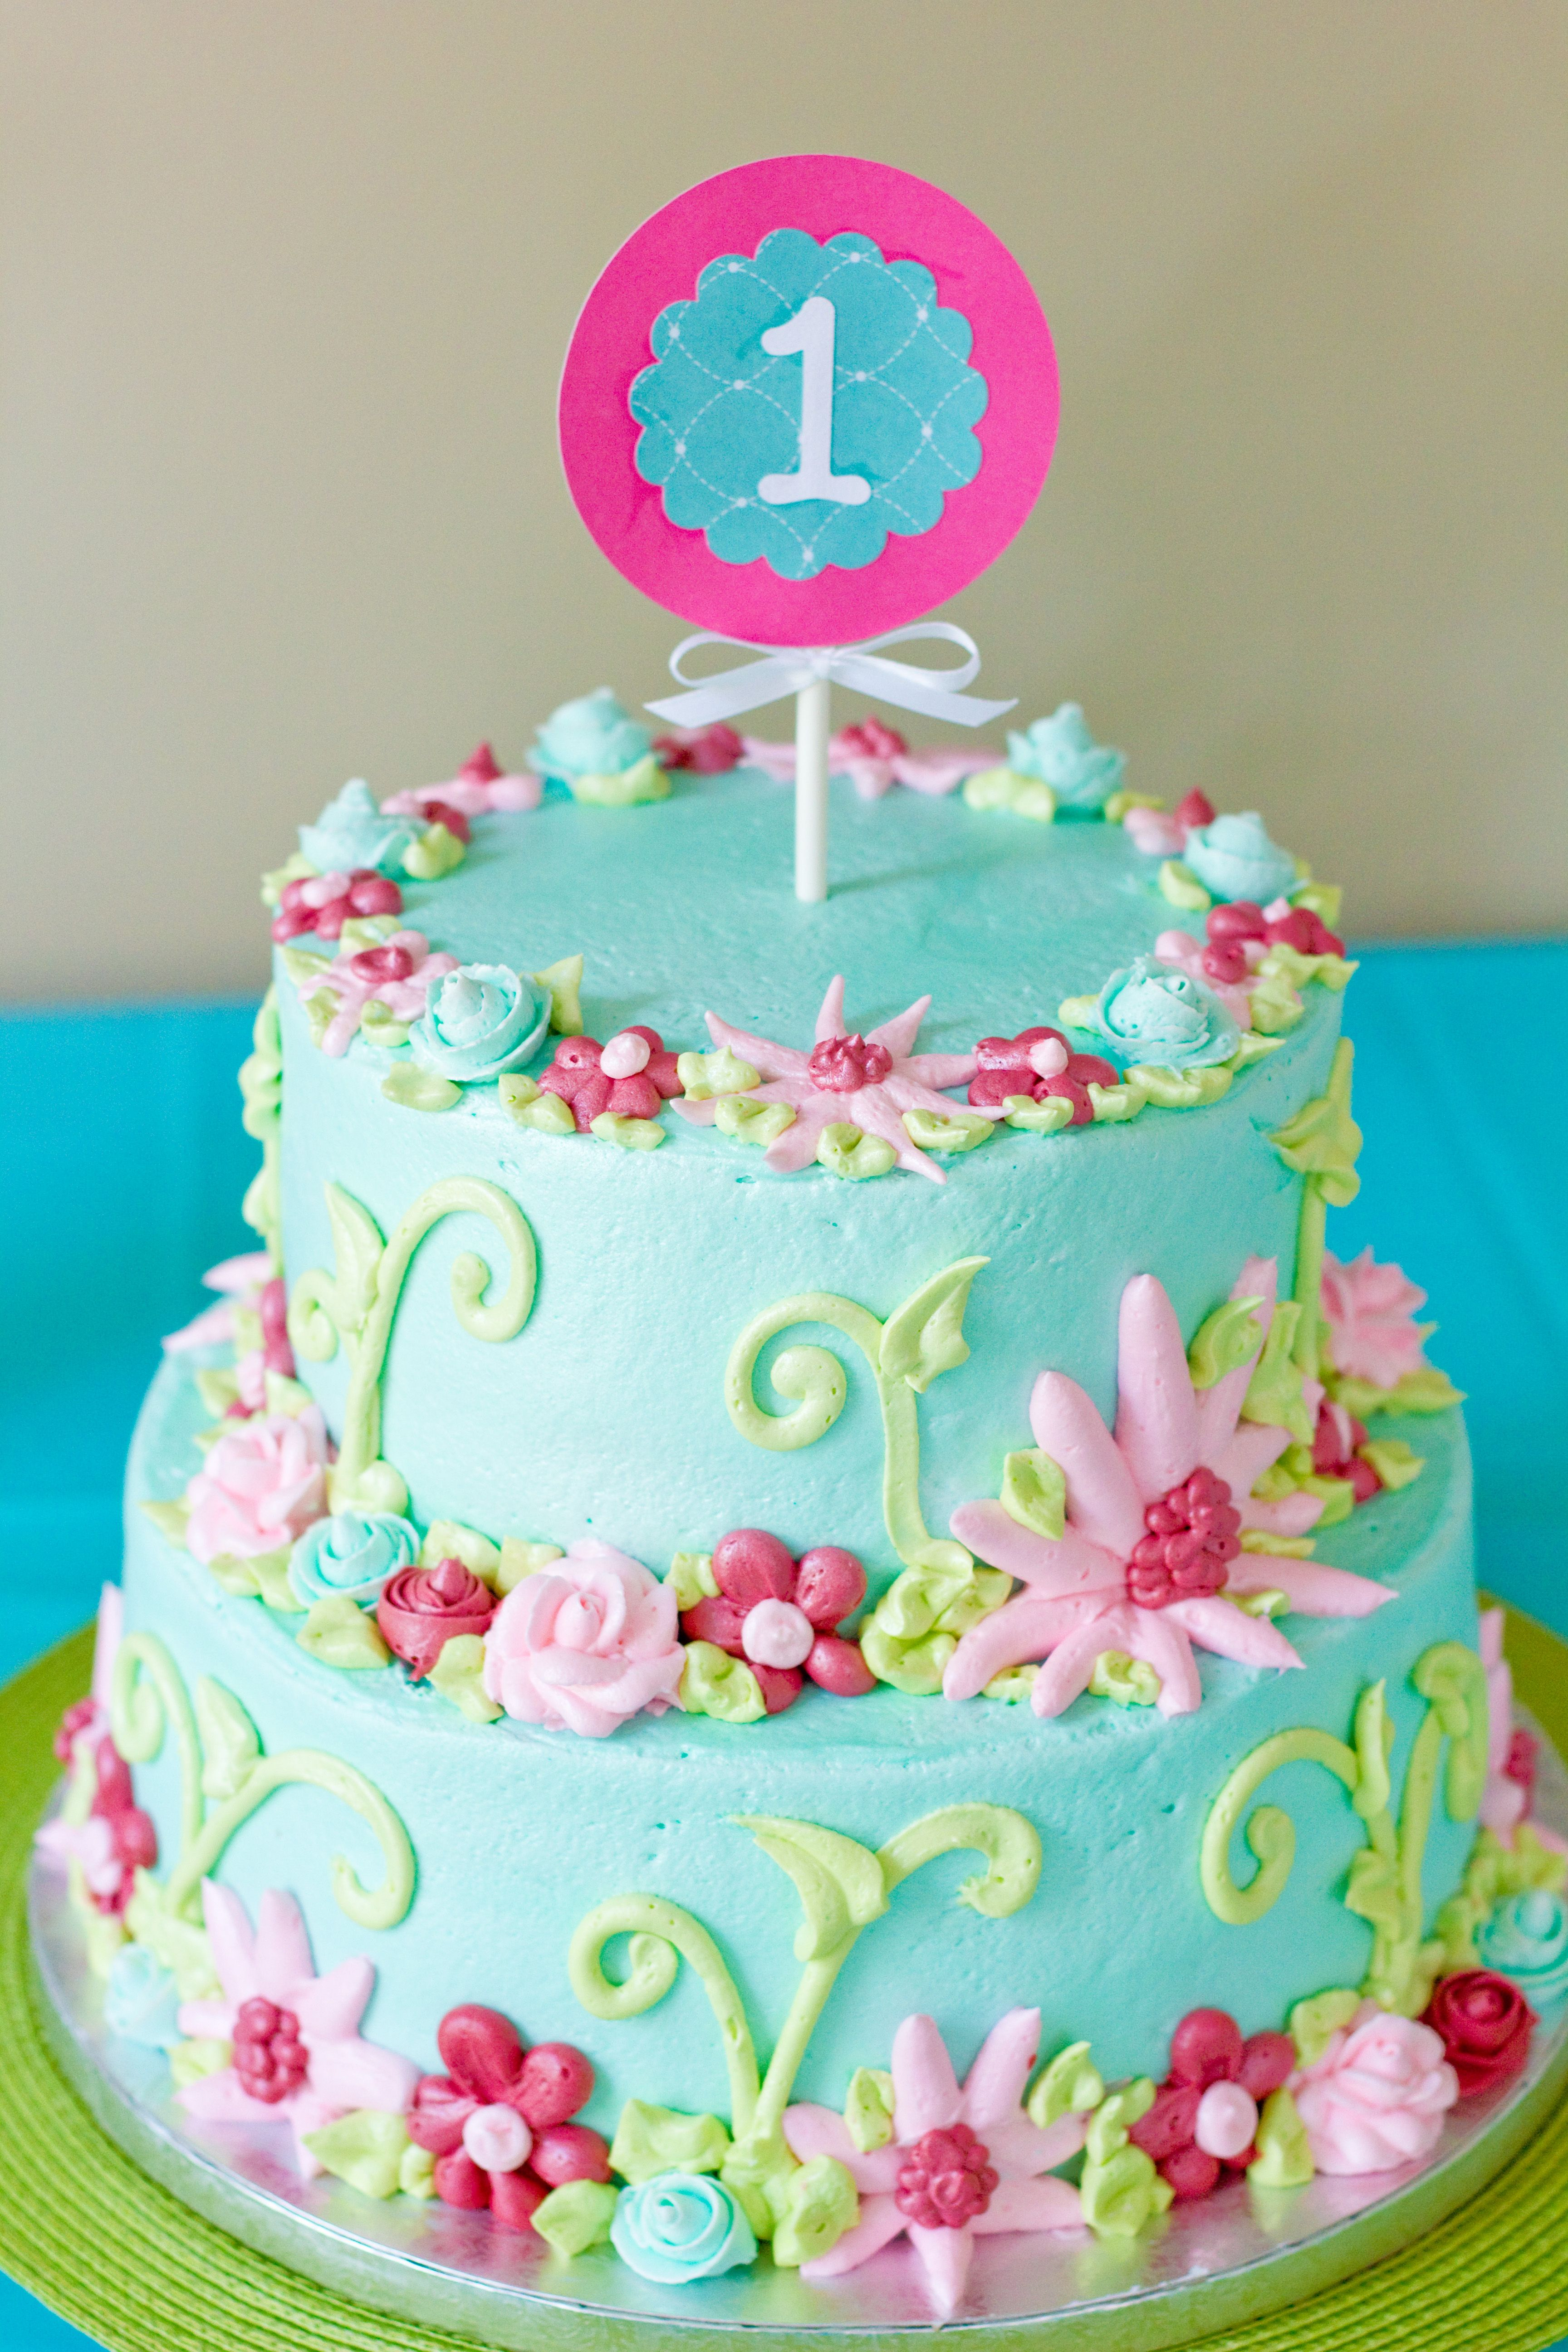 Beautiful Cake Creation From Our Local Publix Bakery 2 Tiered Garden Inspired That Featured The Colors Of Party